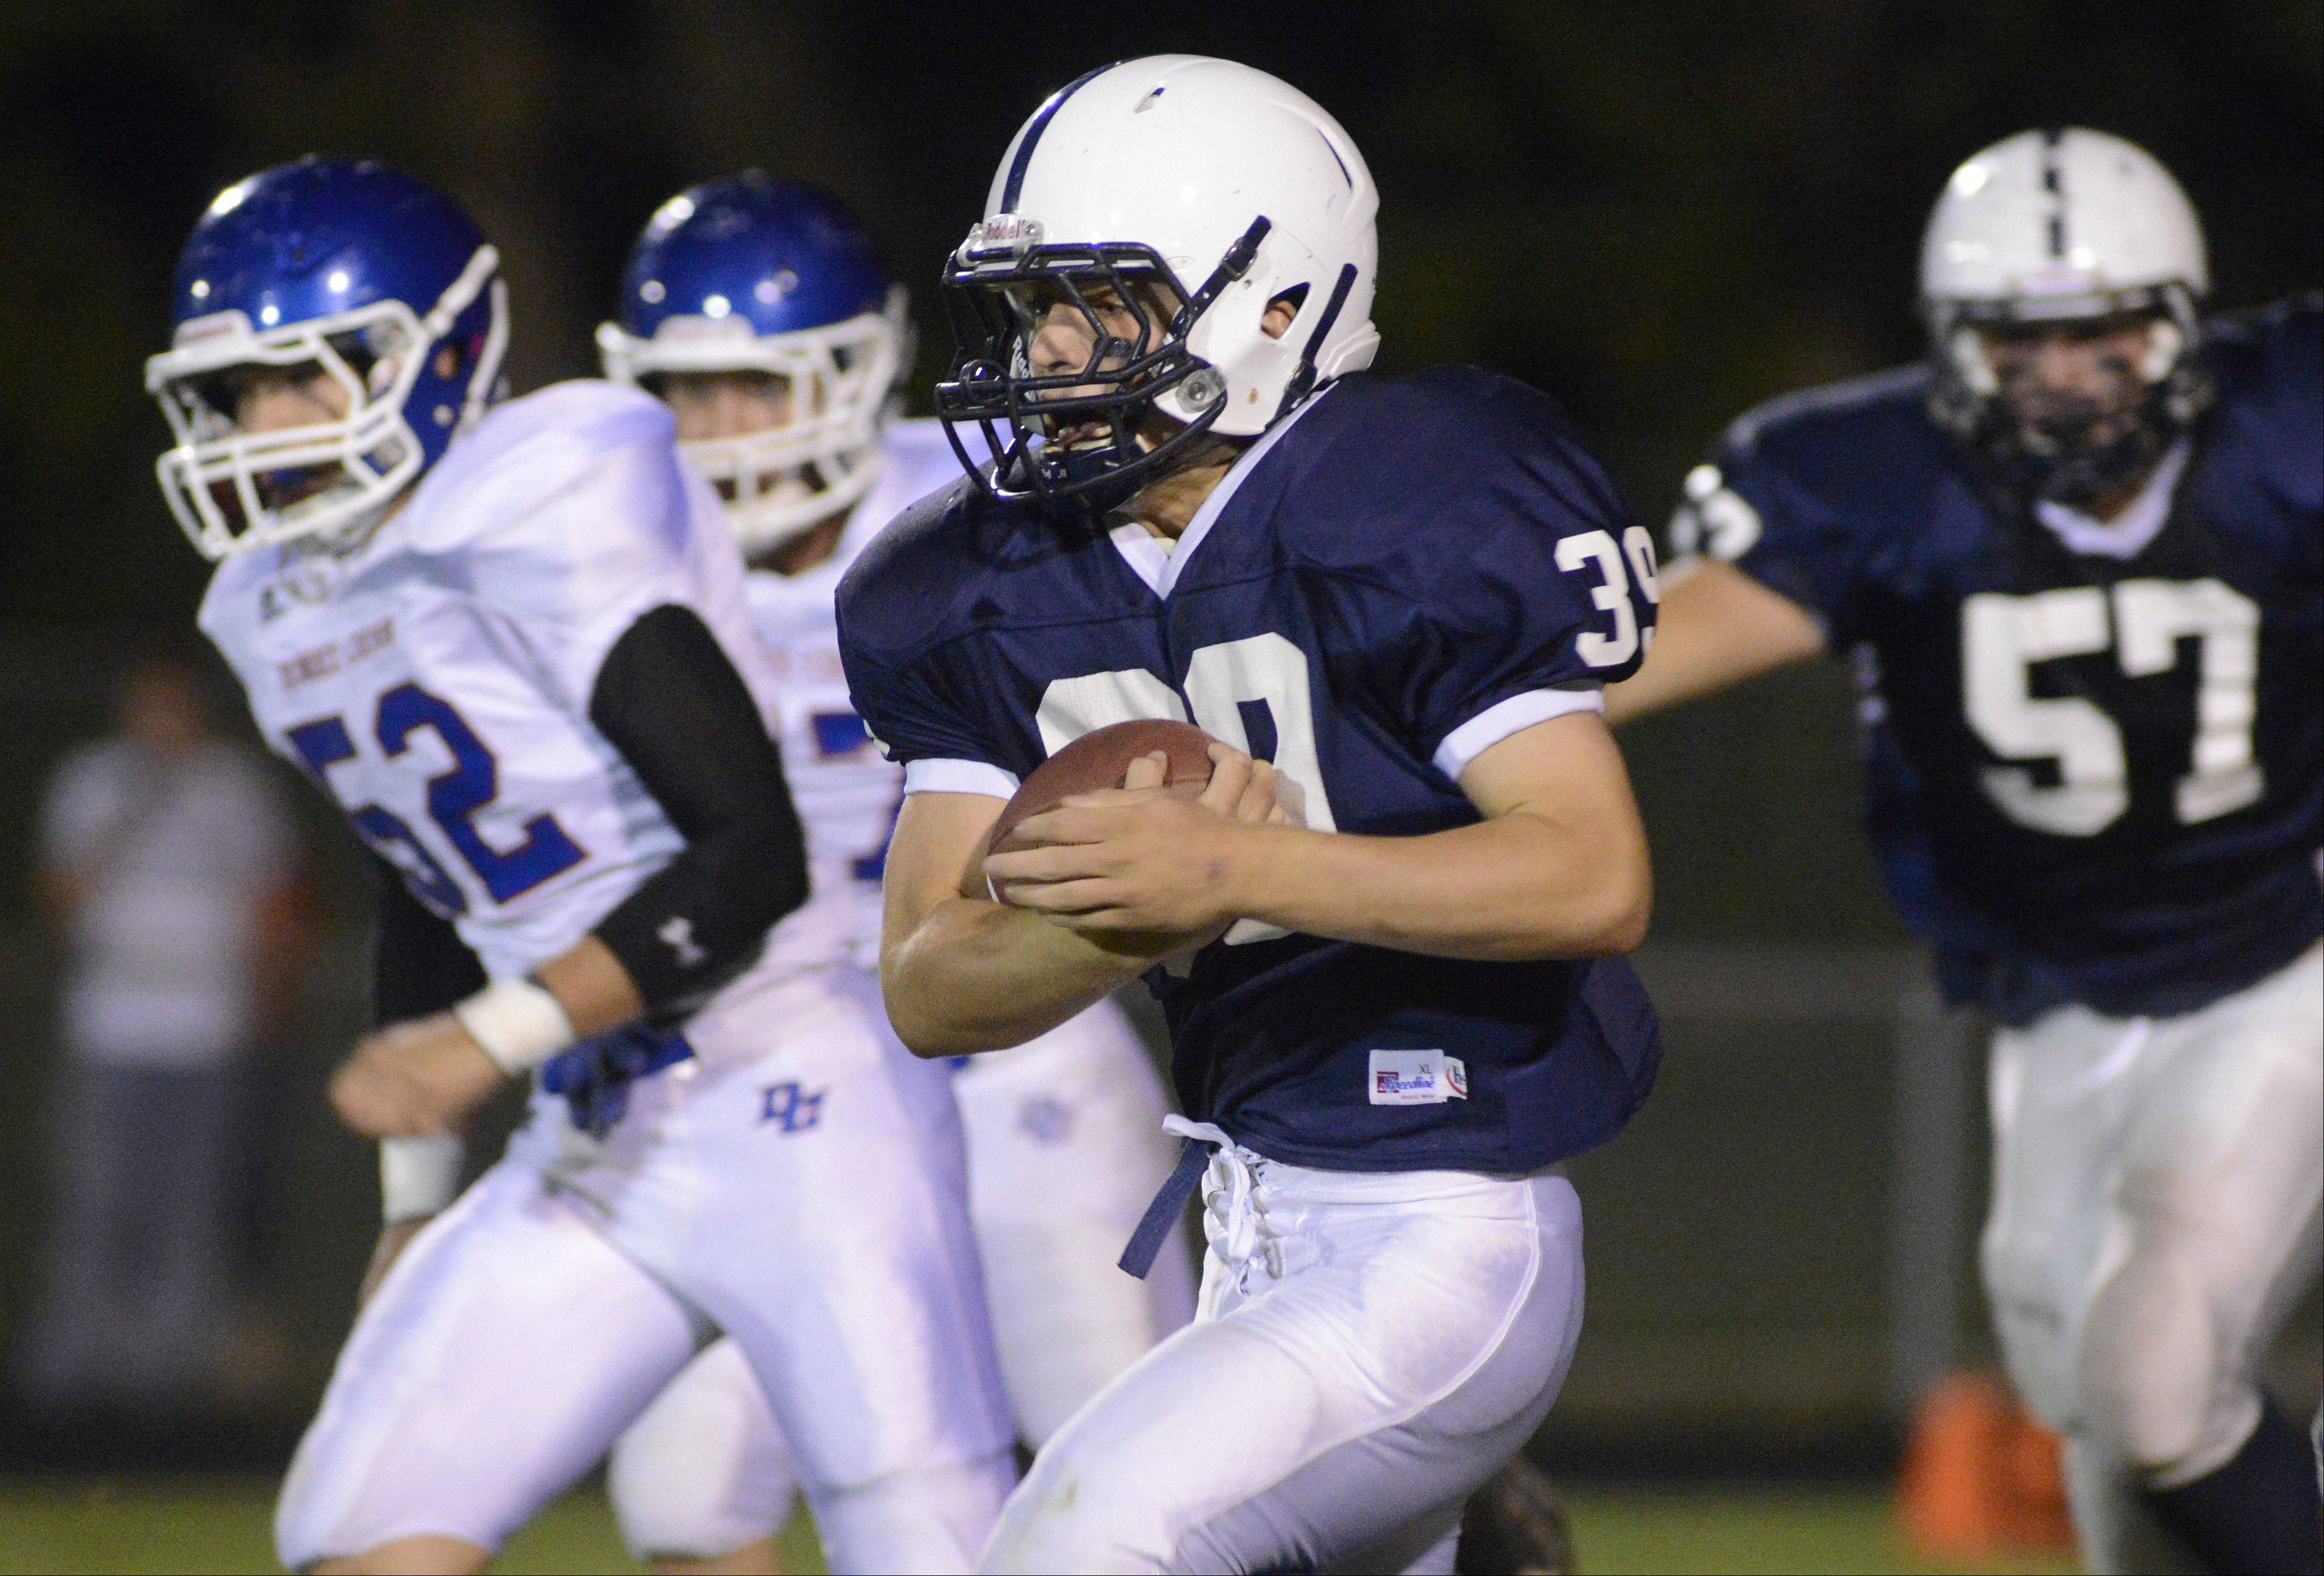 Cary-Grove�s Tyler Pennington makes his way downfield against Dundee-Crown. C-G plays a big FVC Valley game at Jacobs tonight, while Dundee-Crown can clinch its first playoff berth since 1994 with a win at Prairie Ridge.